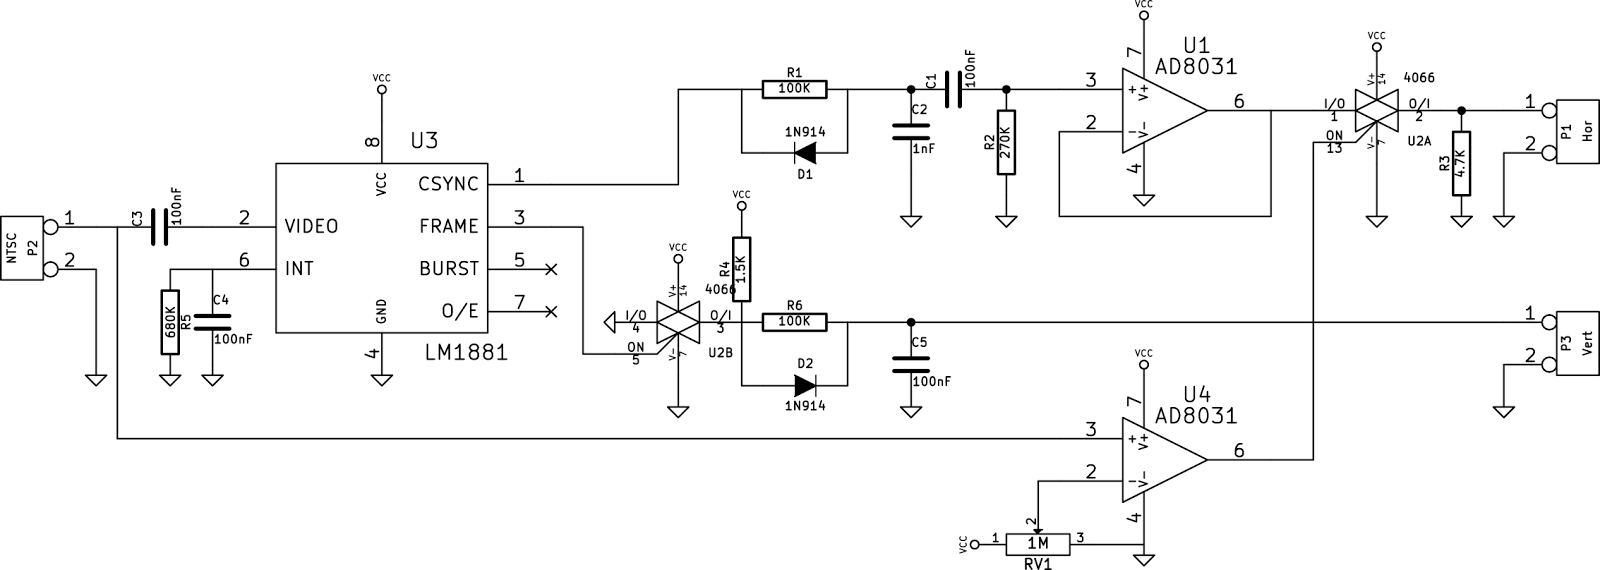 hight resolution of here is the adapter schematic